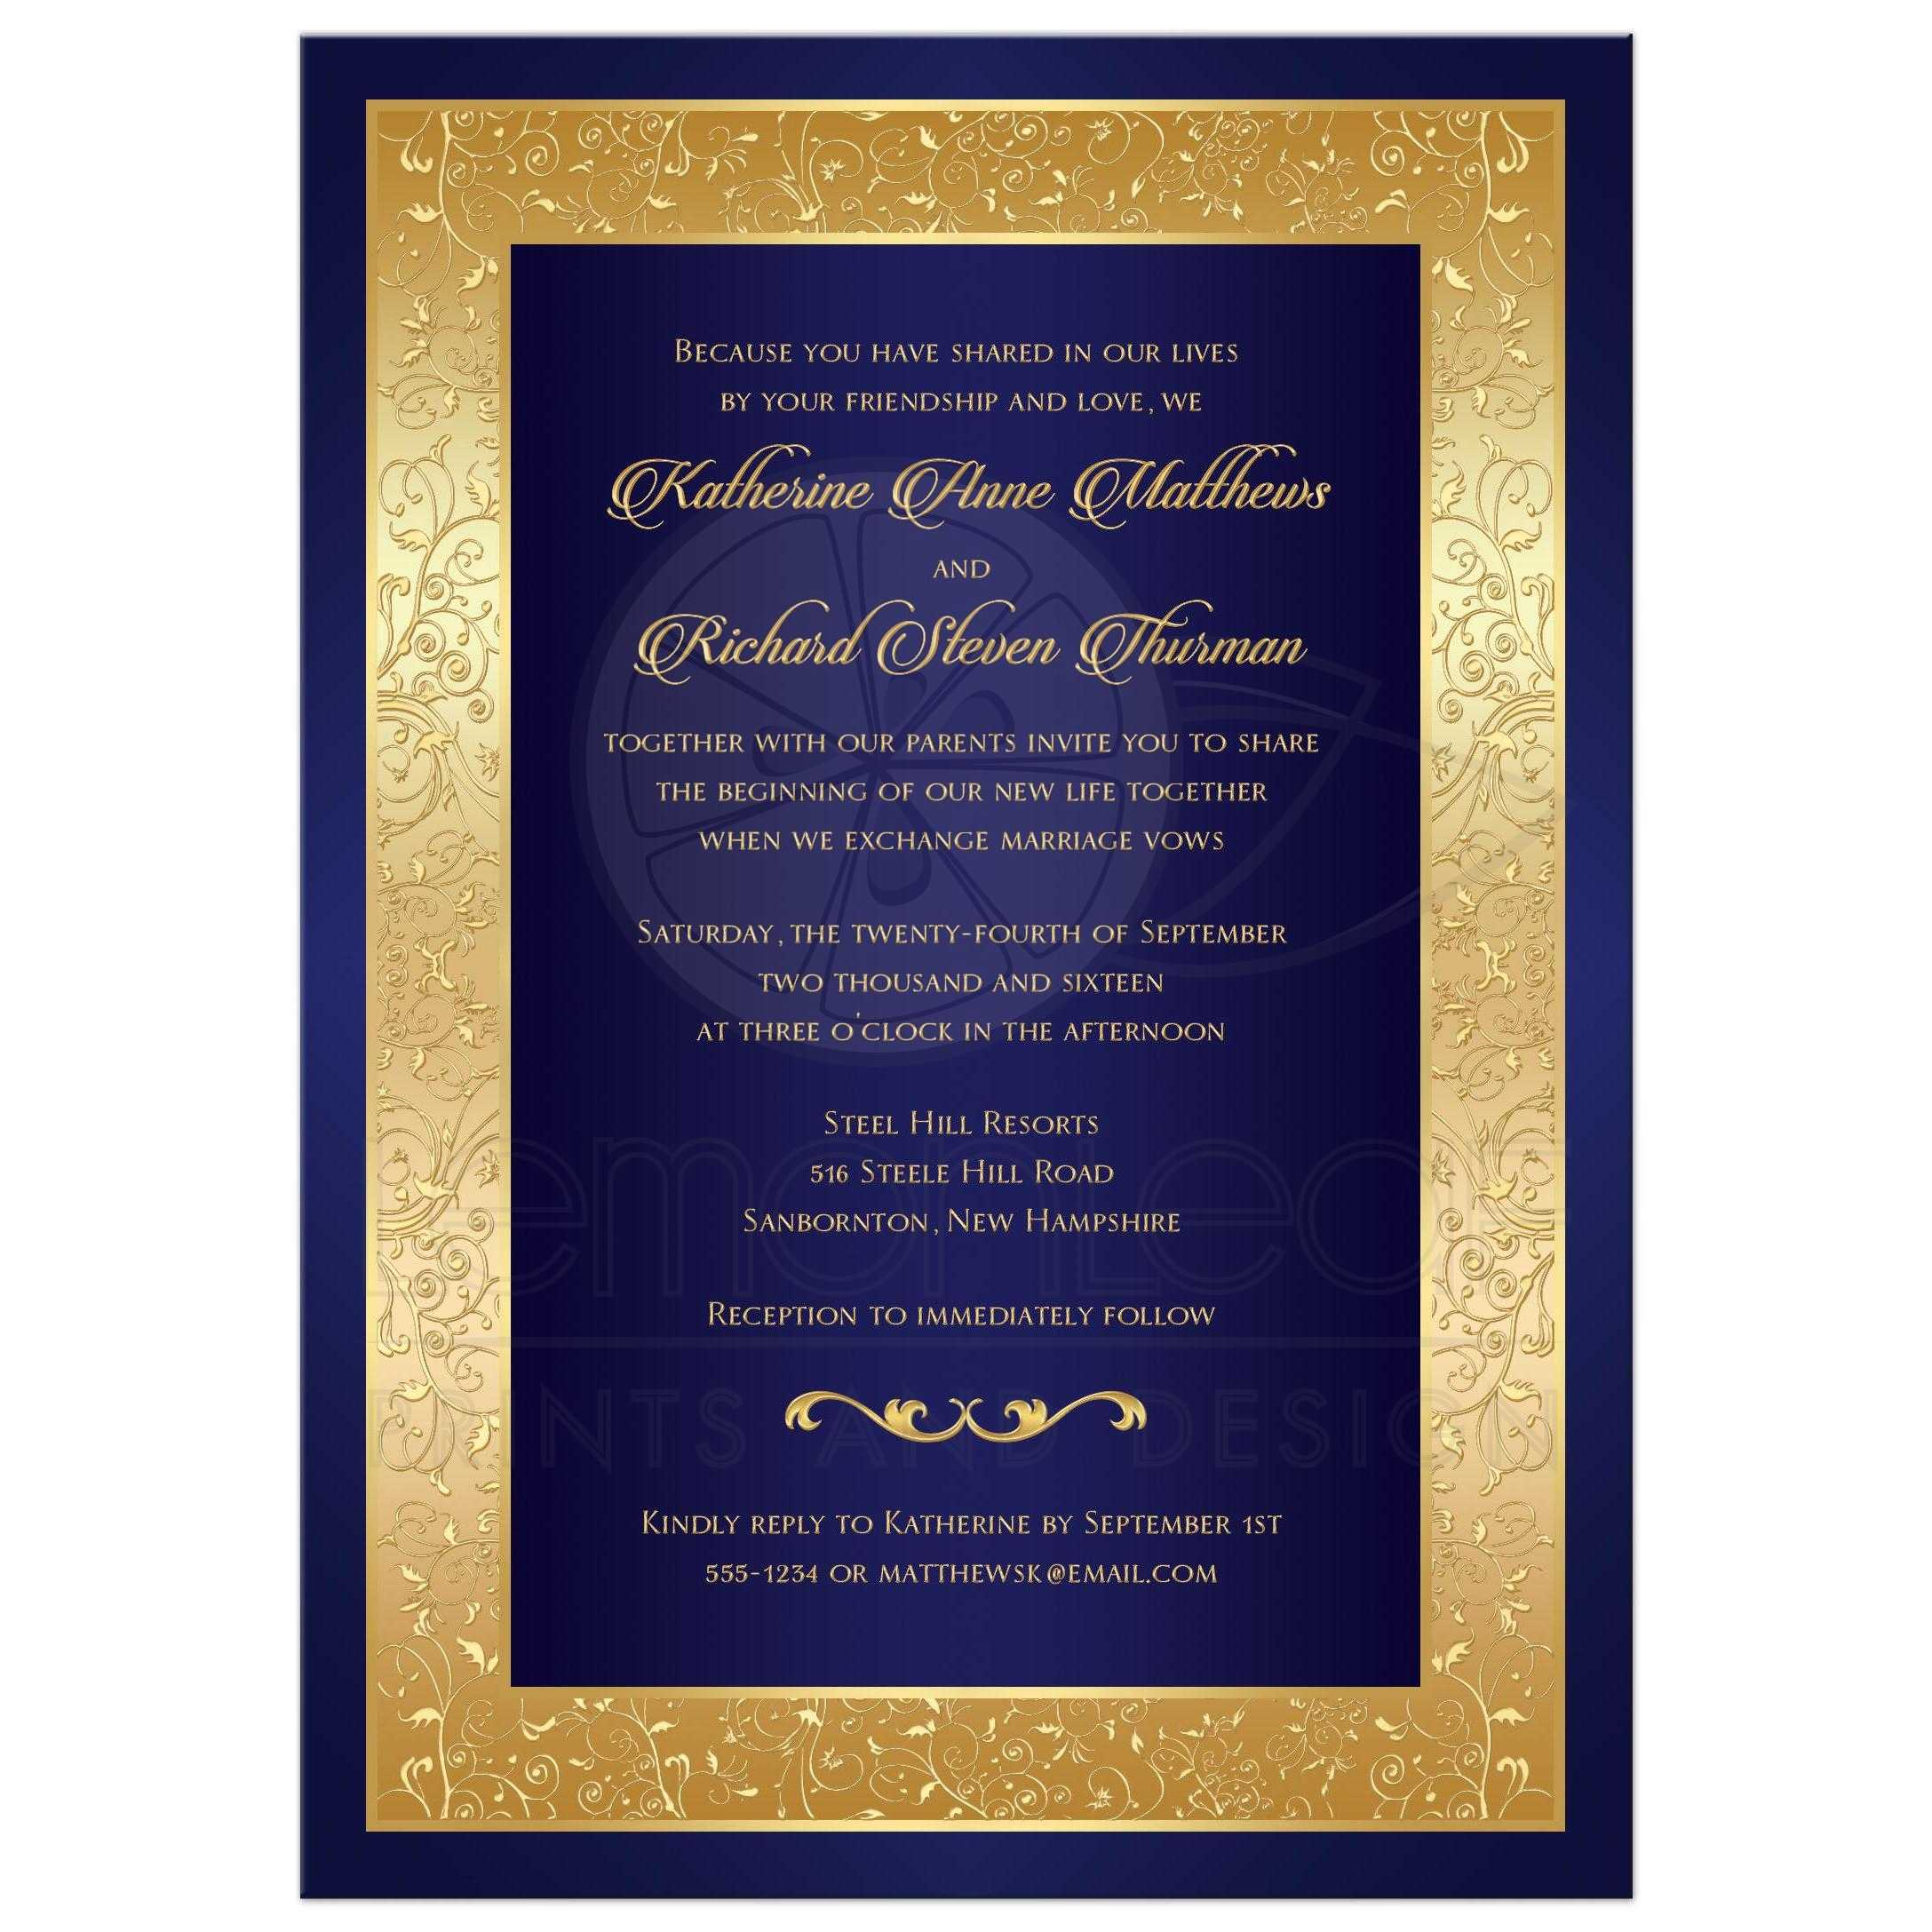 Blue And Gold Wedding Invitation With Floral Scrolled Border: Blue And Gold Wedding Invitations At Websimilar.org